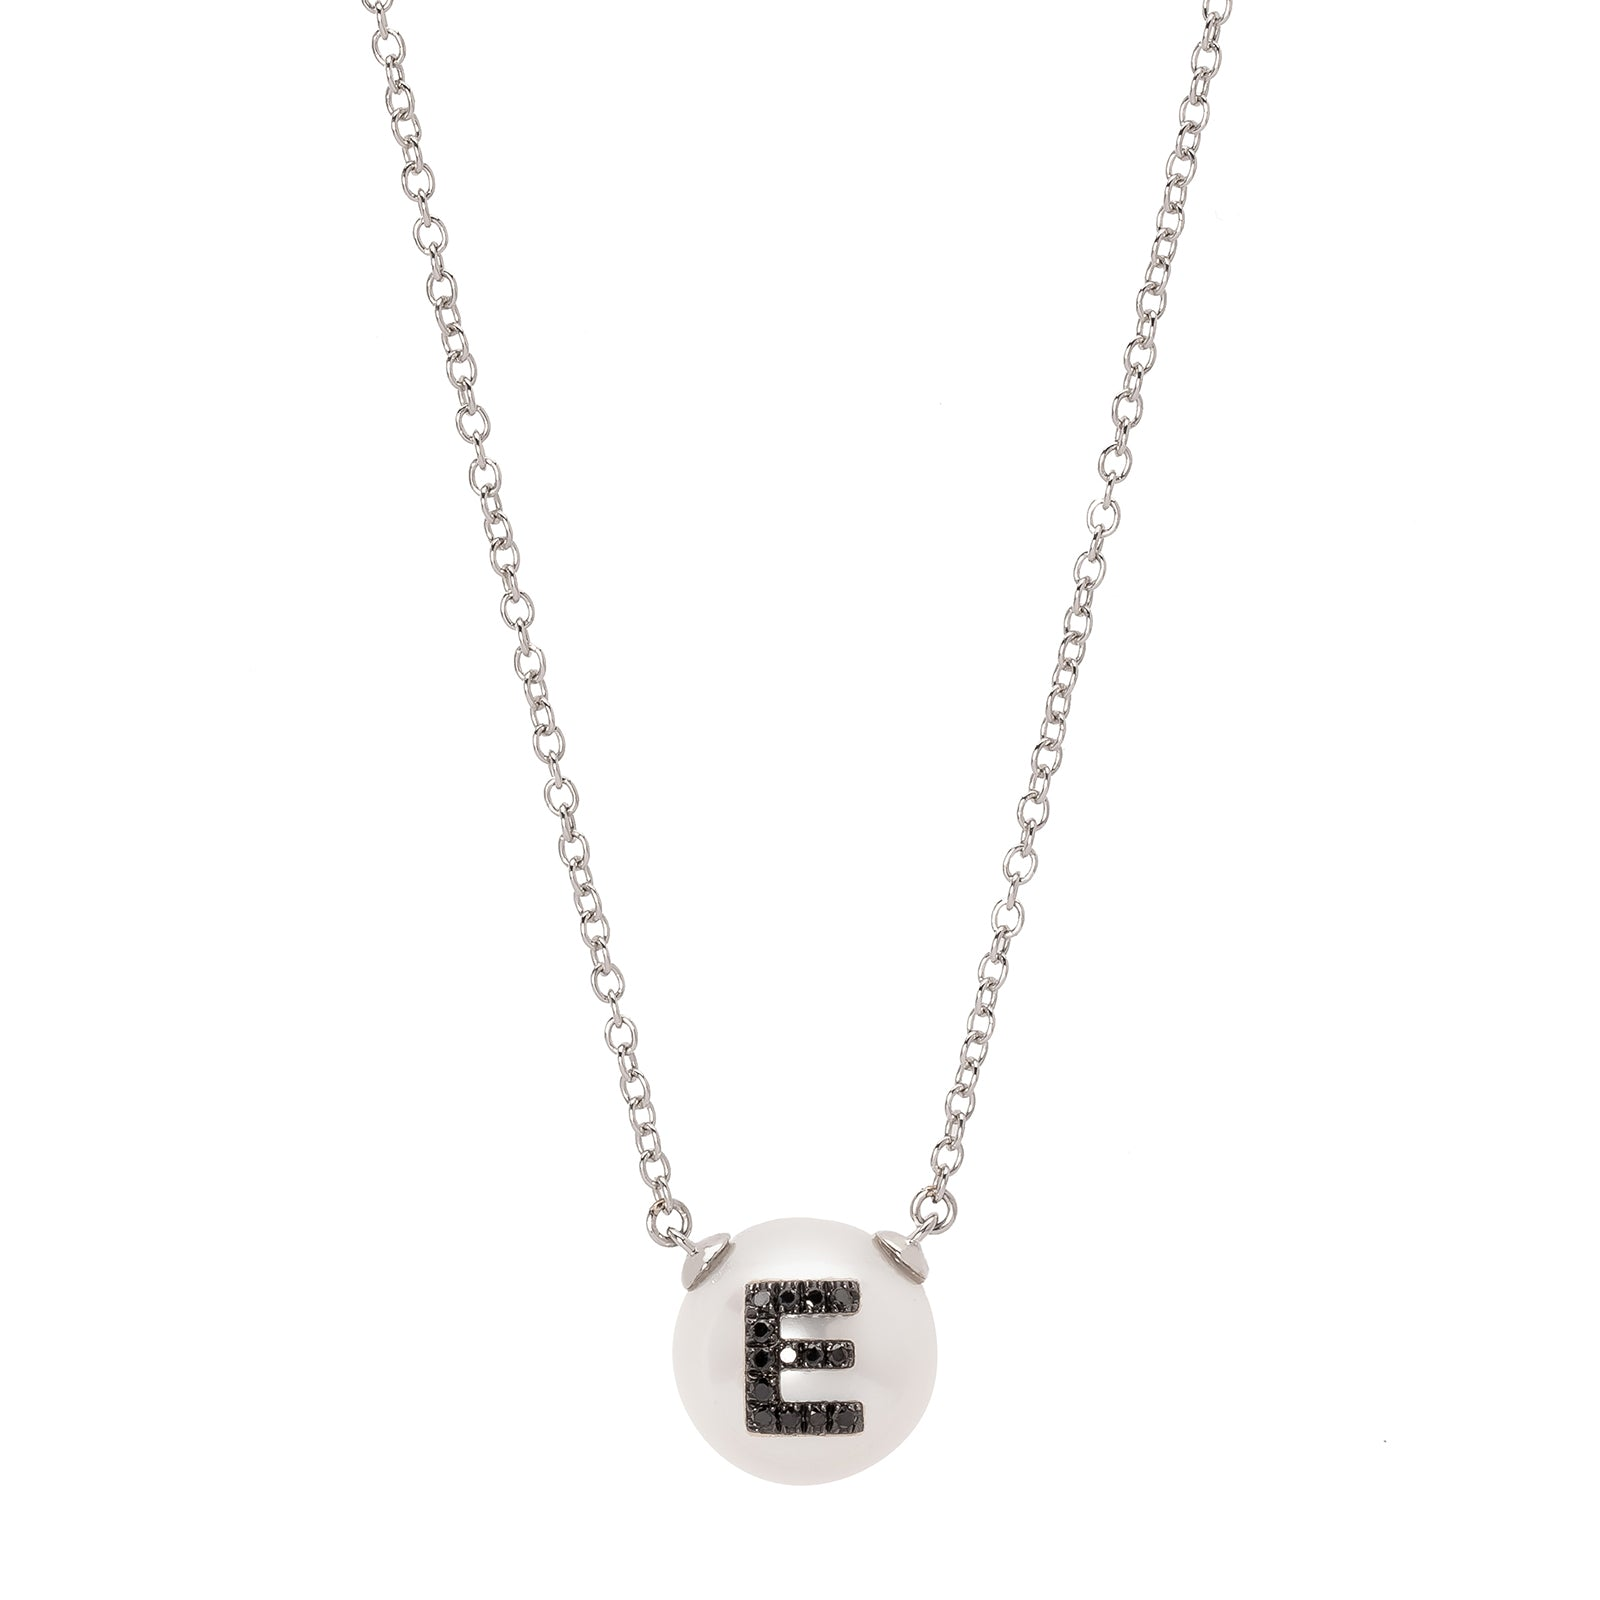 W.Rosado Pearl Black Diamond ID Necklace - Letter E - Necklaces - Broken English Jewelry